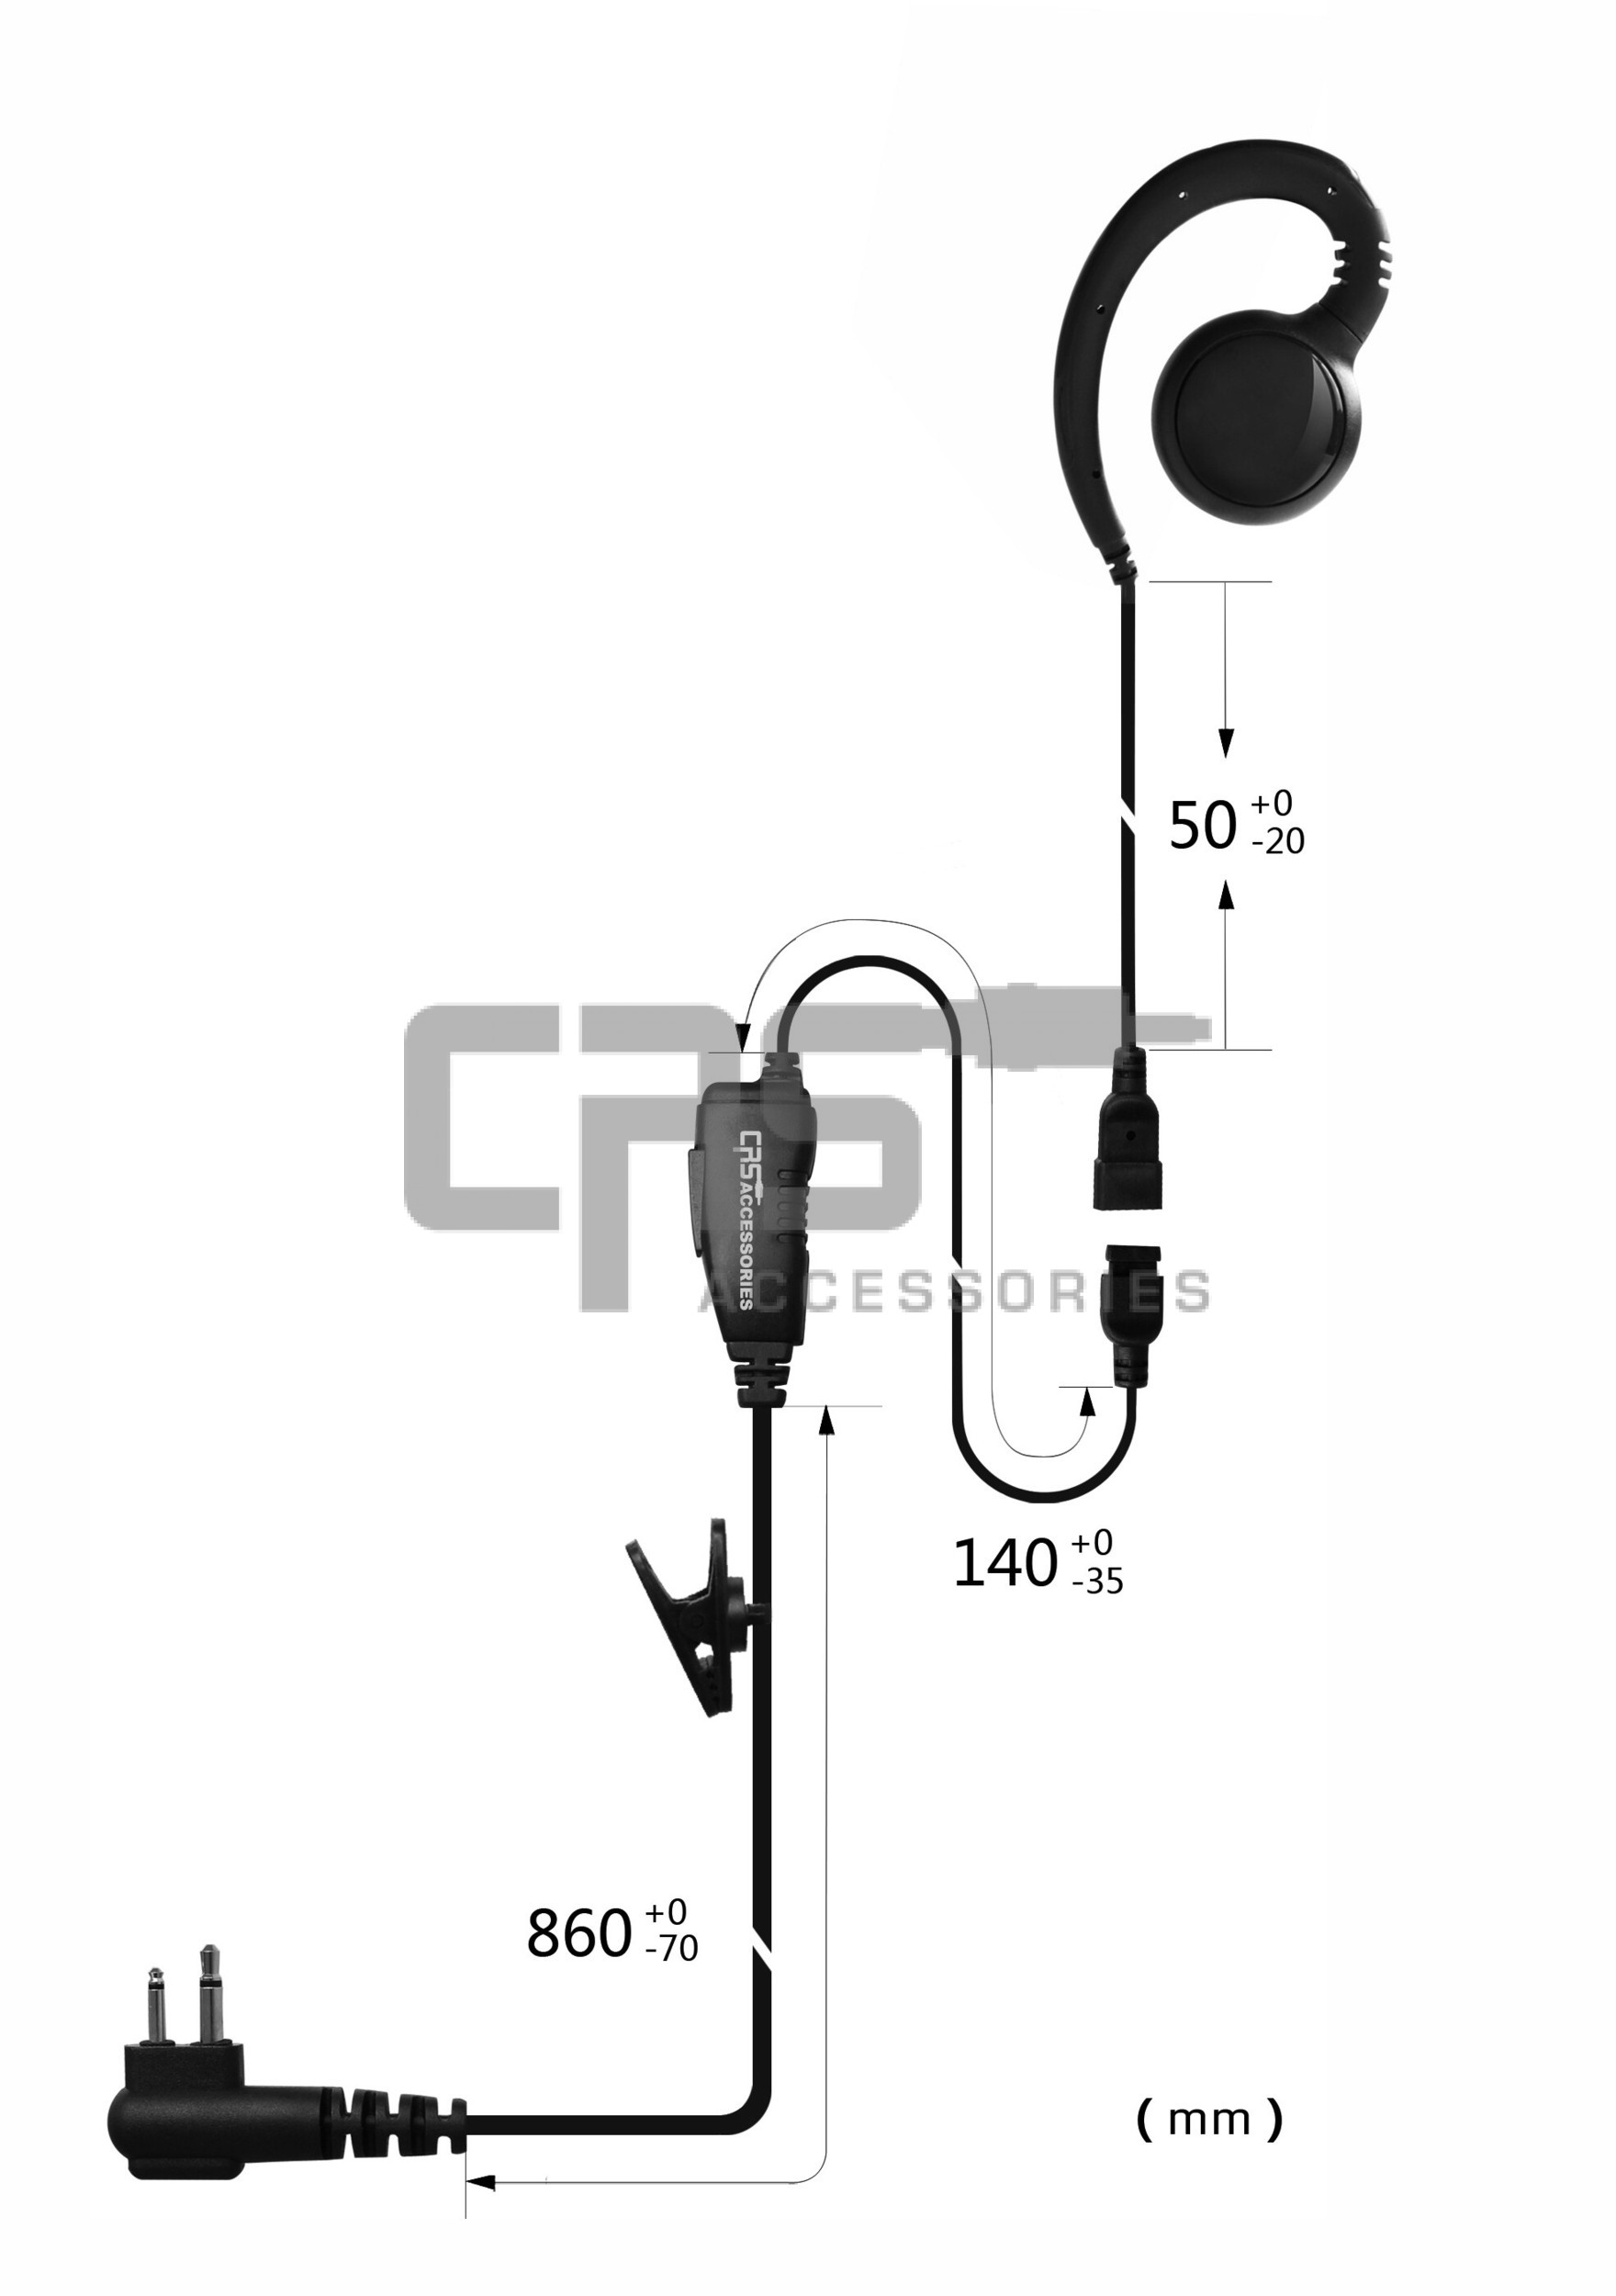 CRS 1 Wire GHOOK earpiece with Inline PTT/MIC to suit Kenwood multipin